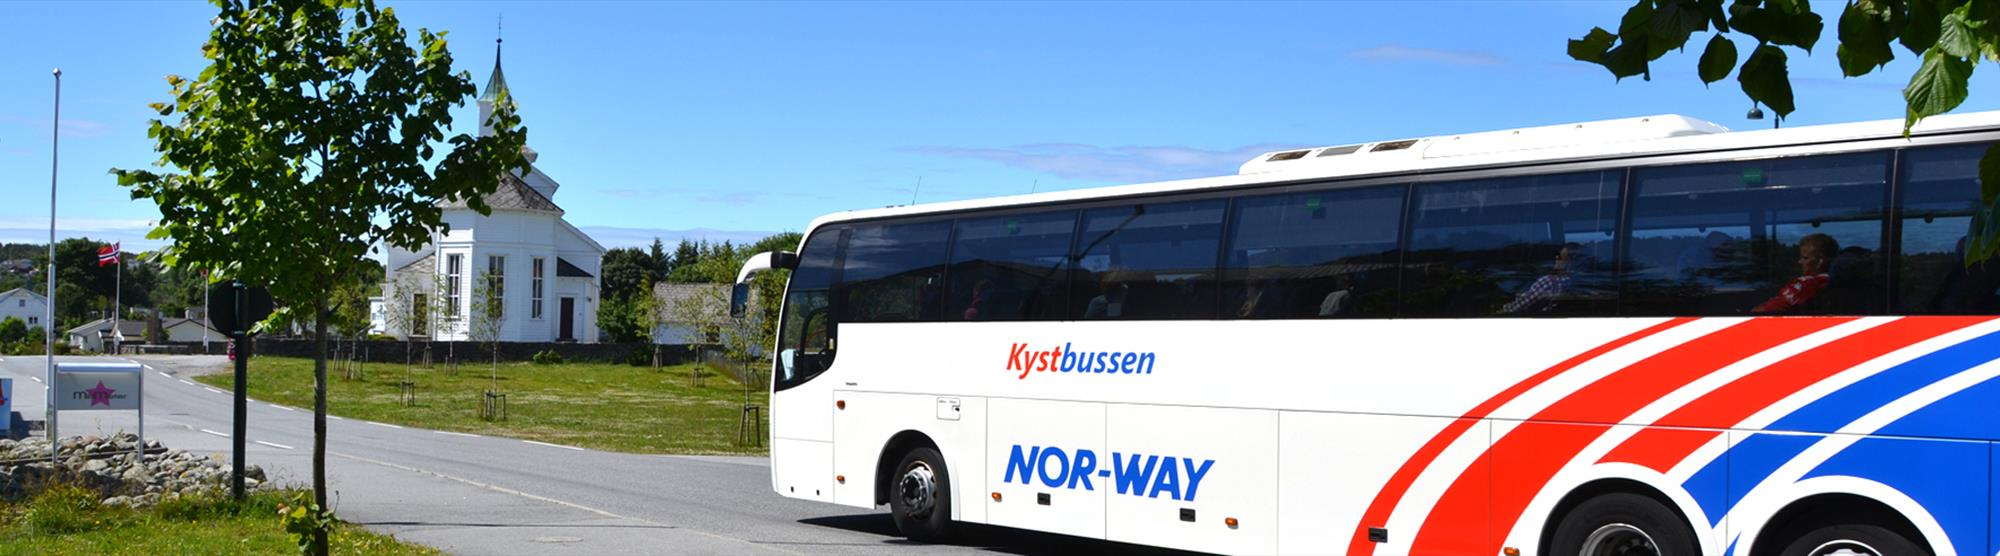 To Bergen by bus